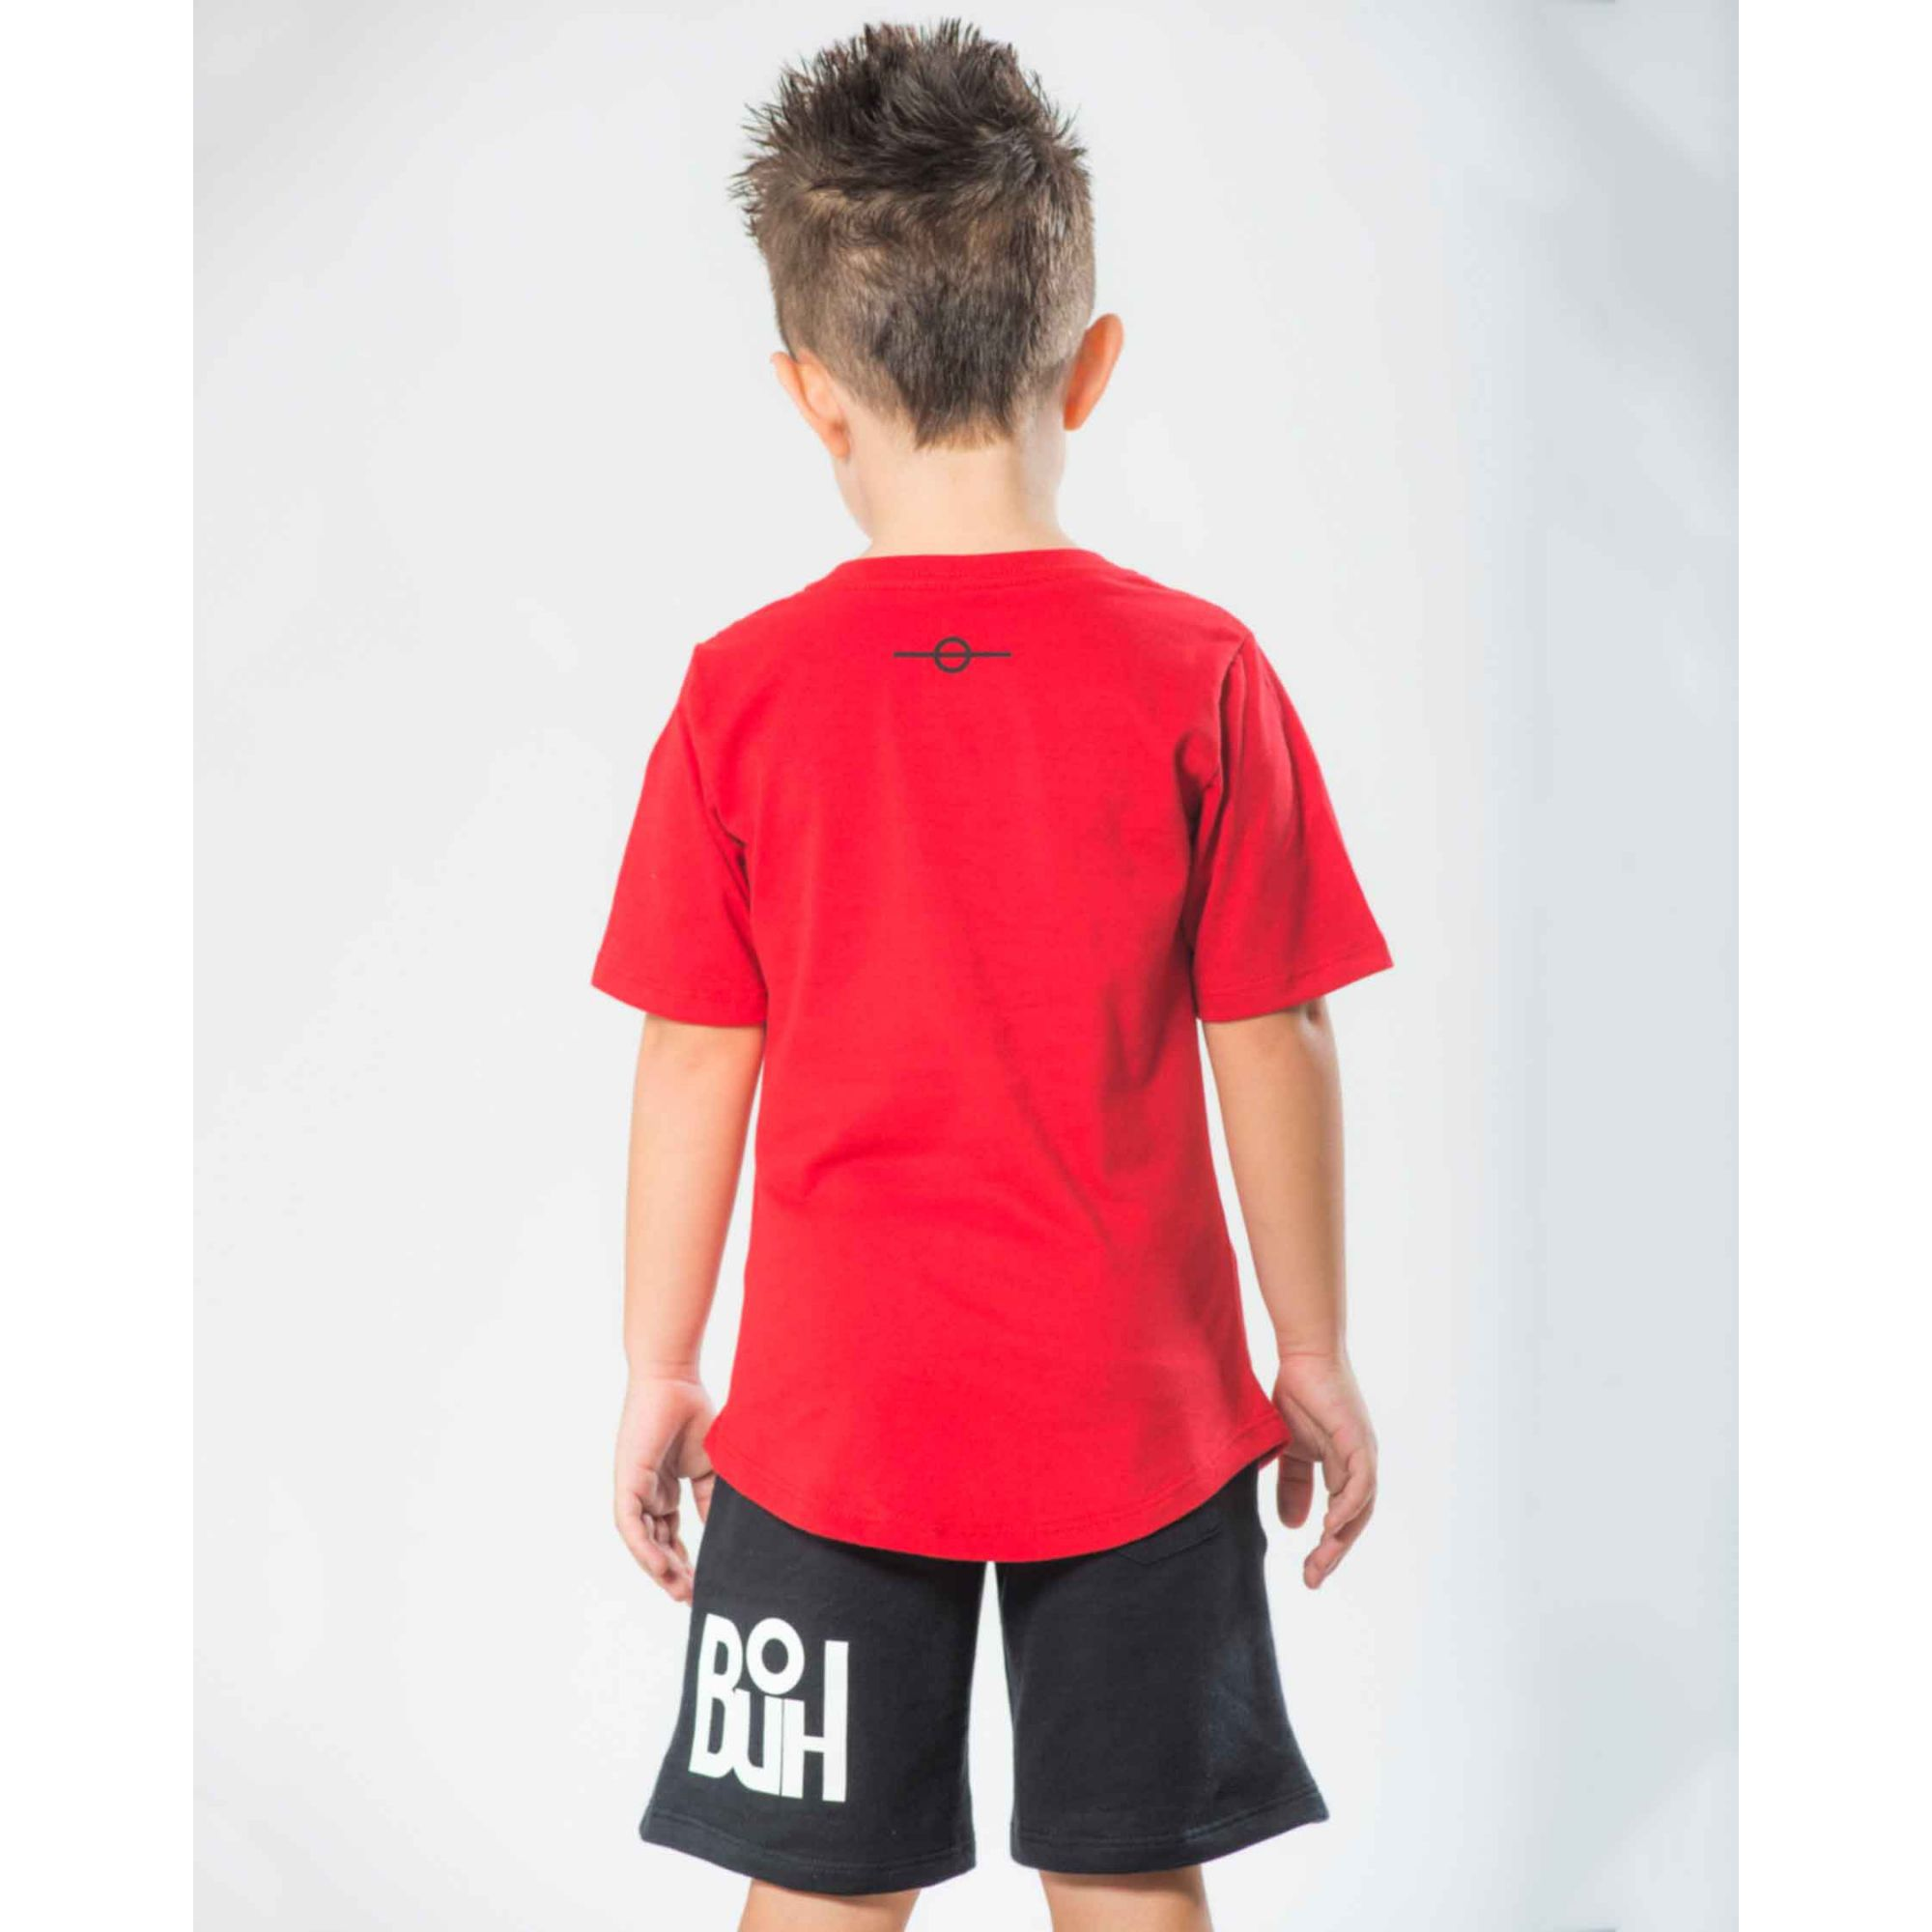 Camiseta Oversized Buh Kids FTG Minimal Red